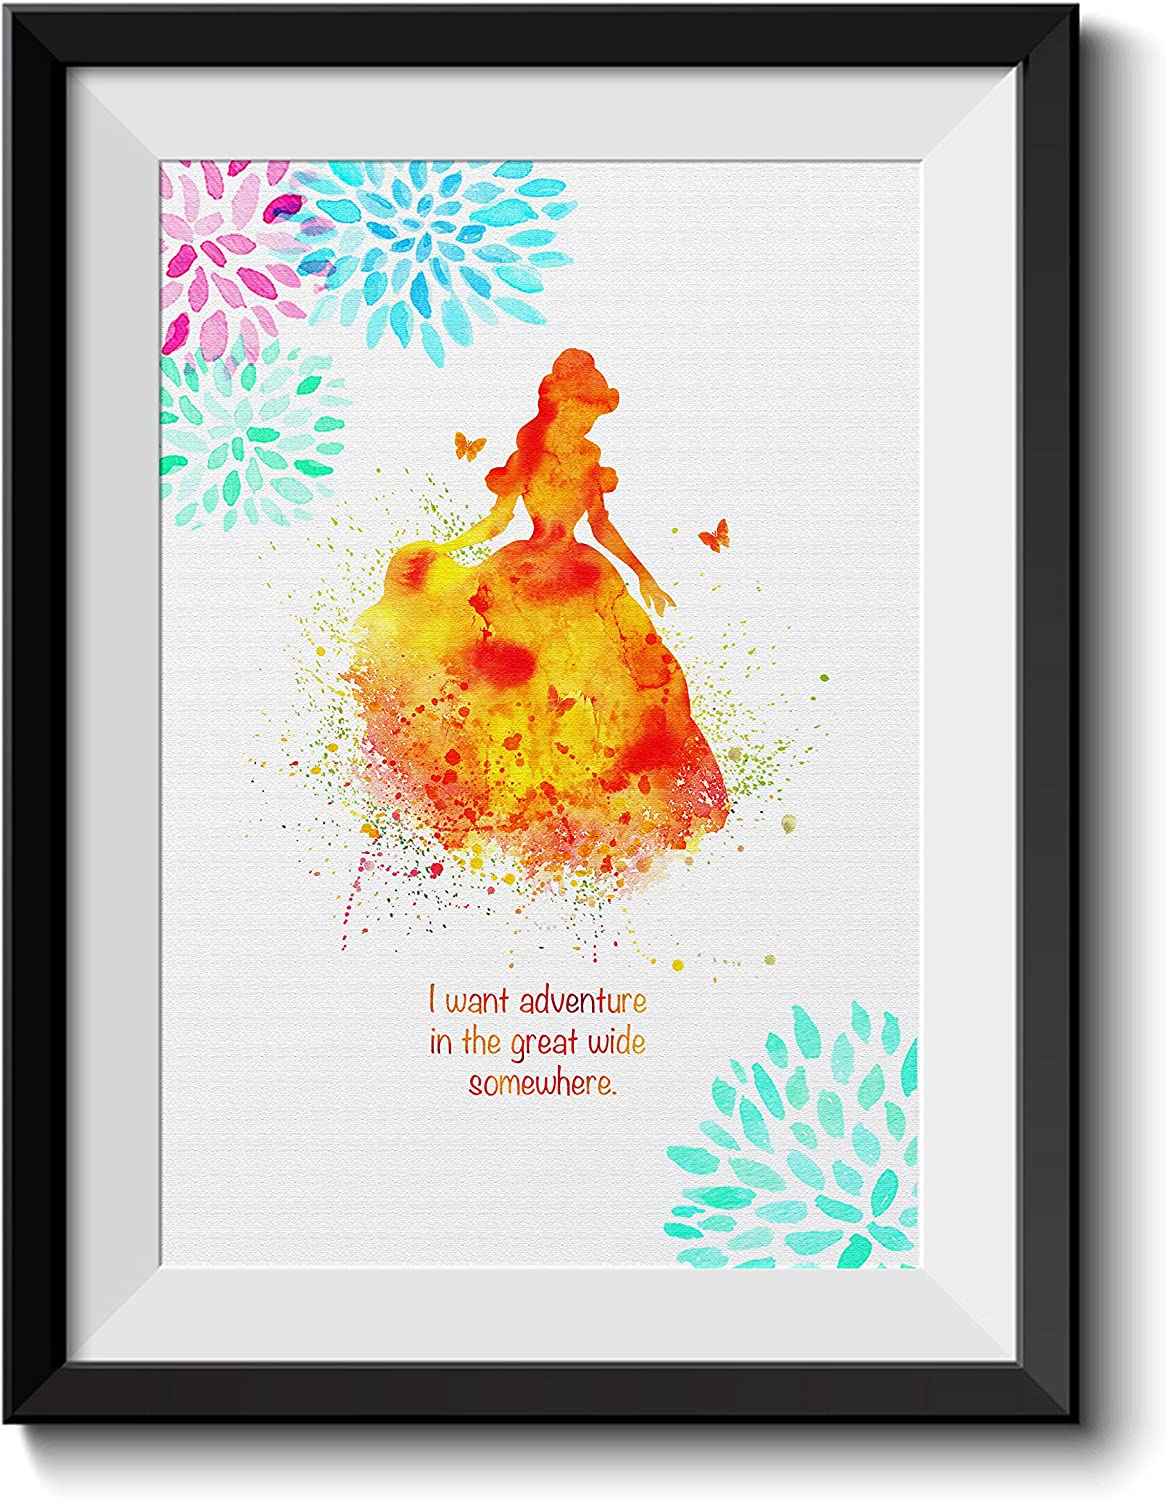 Uhomate Princess Belle Beauty and The Beast Beauty Beast Home Canvas Prints Wall Art Inspirational Quotes Wall Decor Living Room Bedroom Bathroom Artwork C016 (11X14)